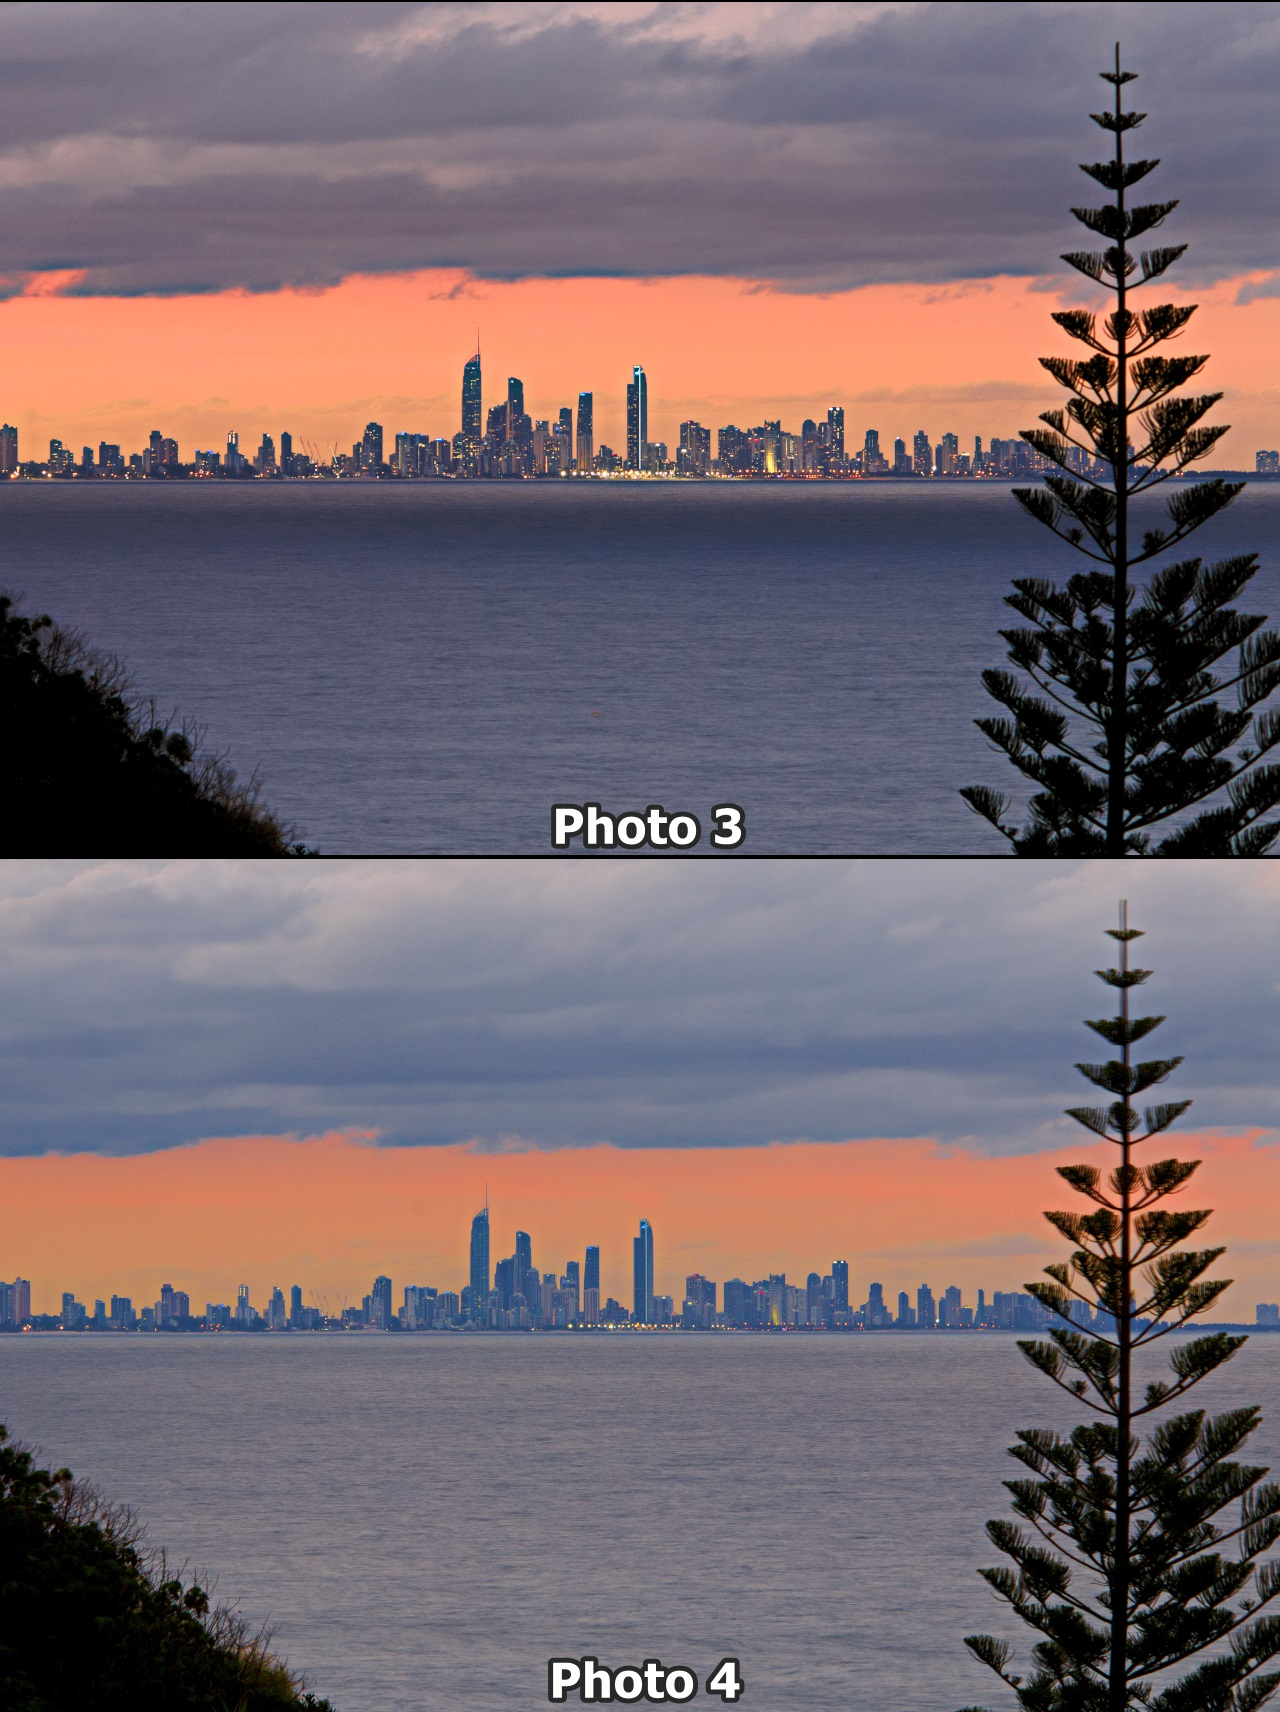 Same Photo Different Light Conditions 1_2